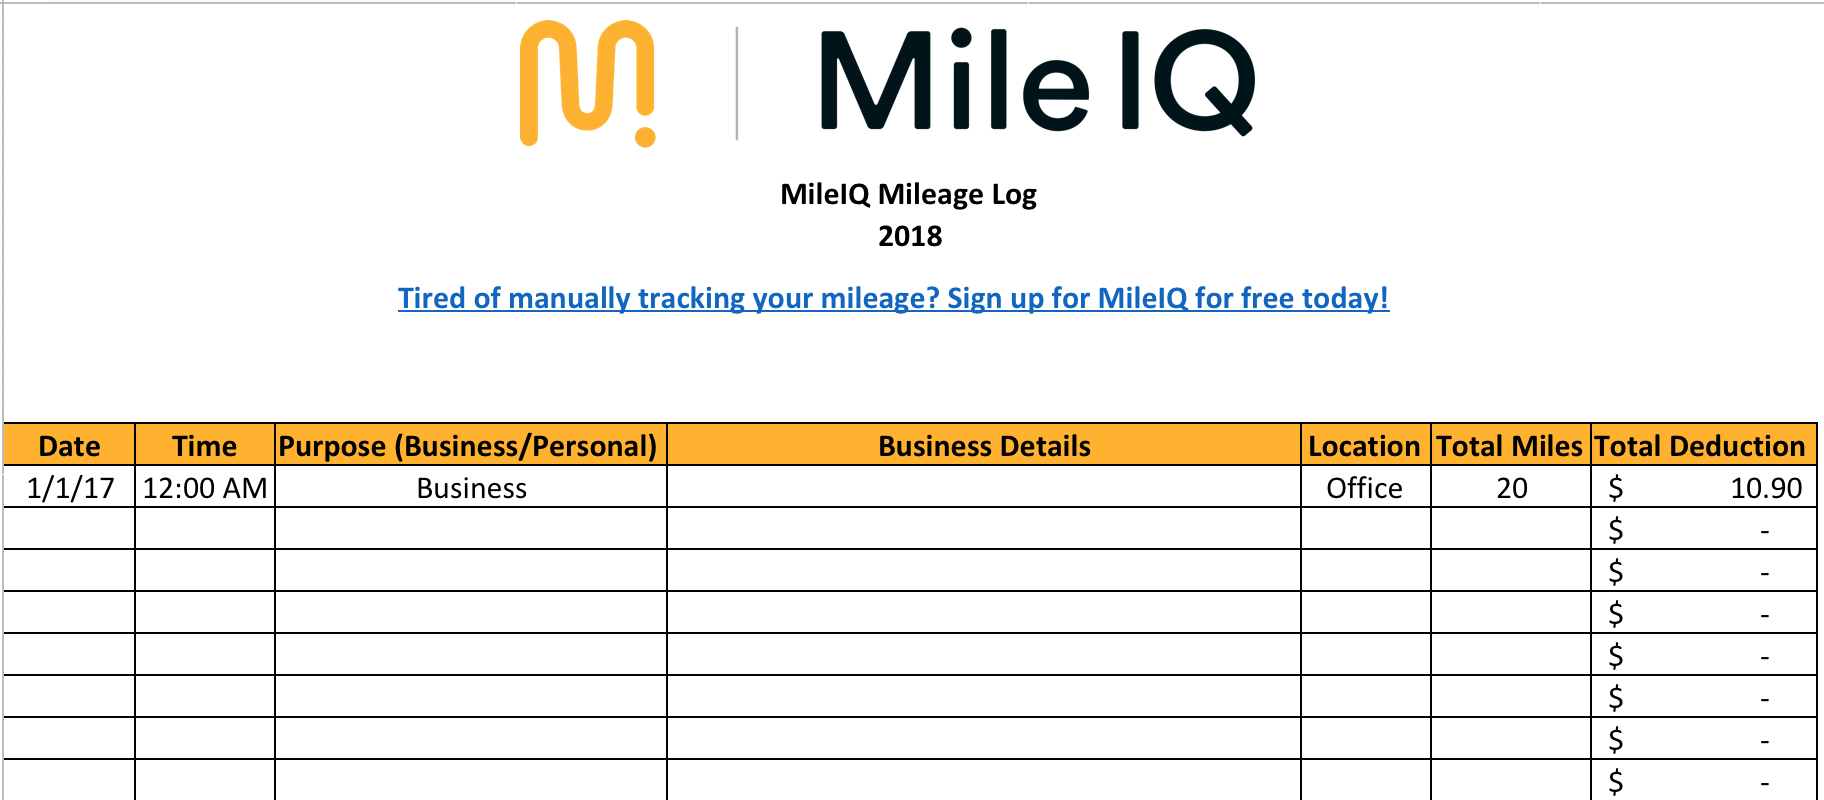 Log Book Auditing Spreadsheet Intended For Free Mileage Log Template For Excel  Track Your Miles